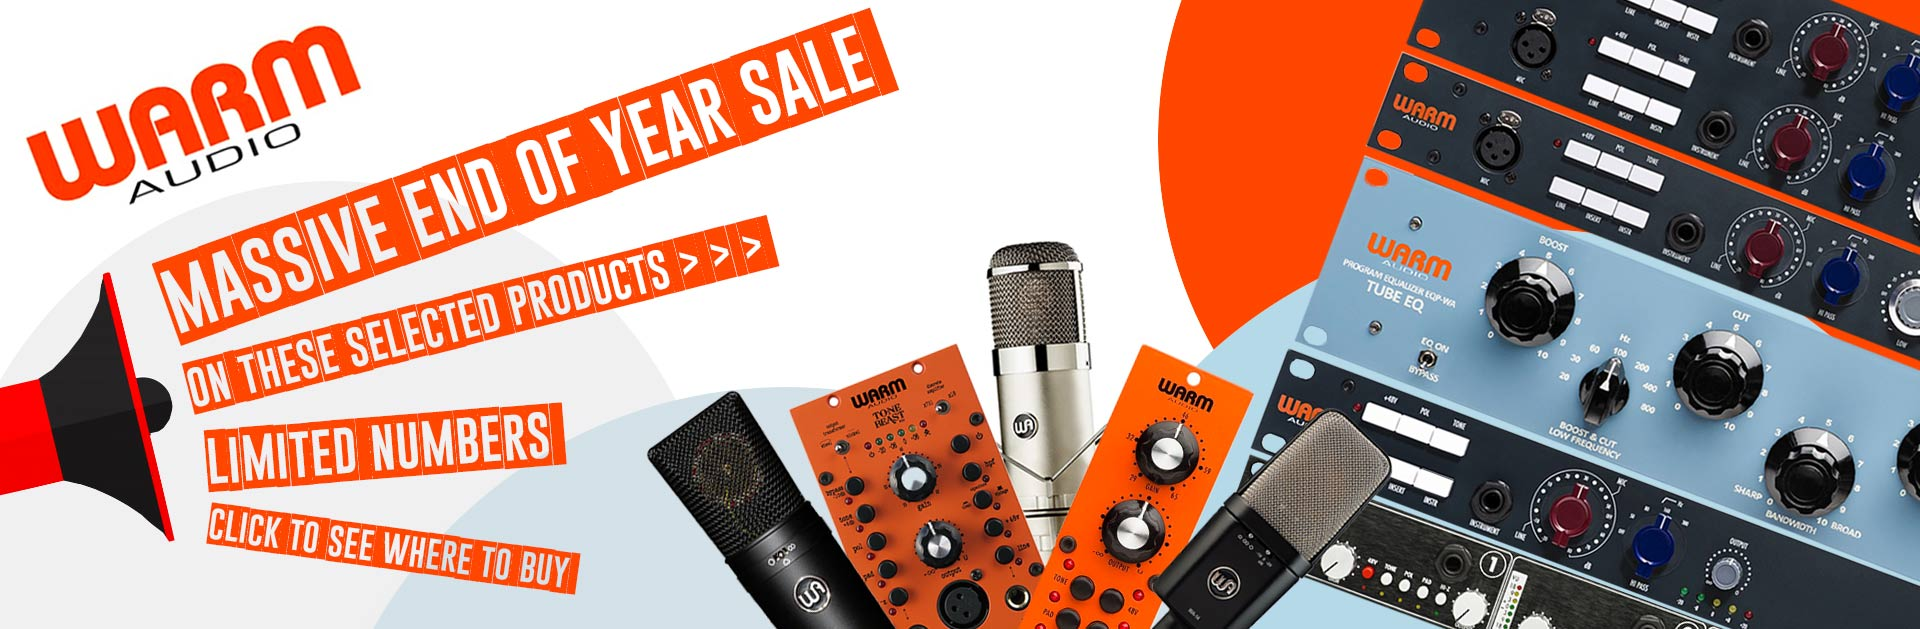 Warm Audio End of year Sale